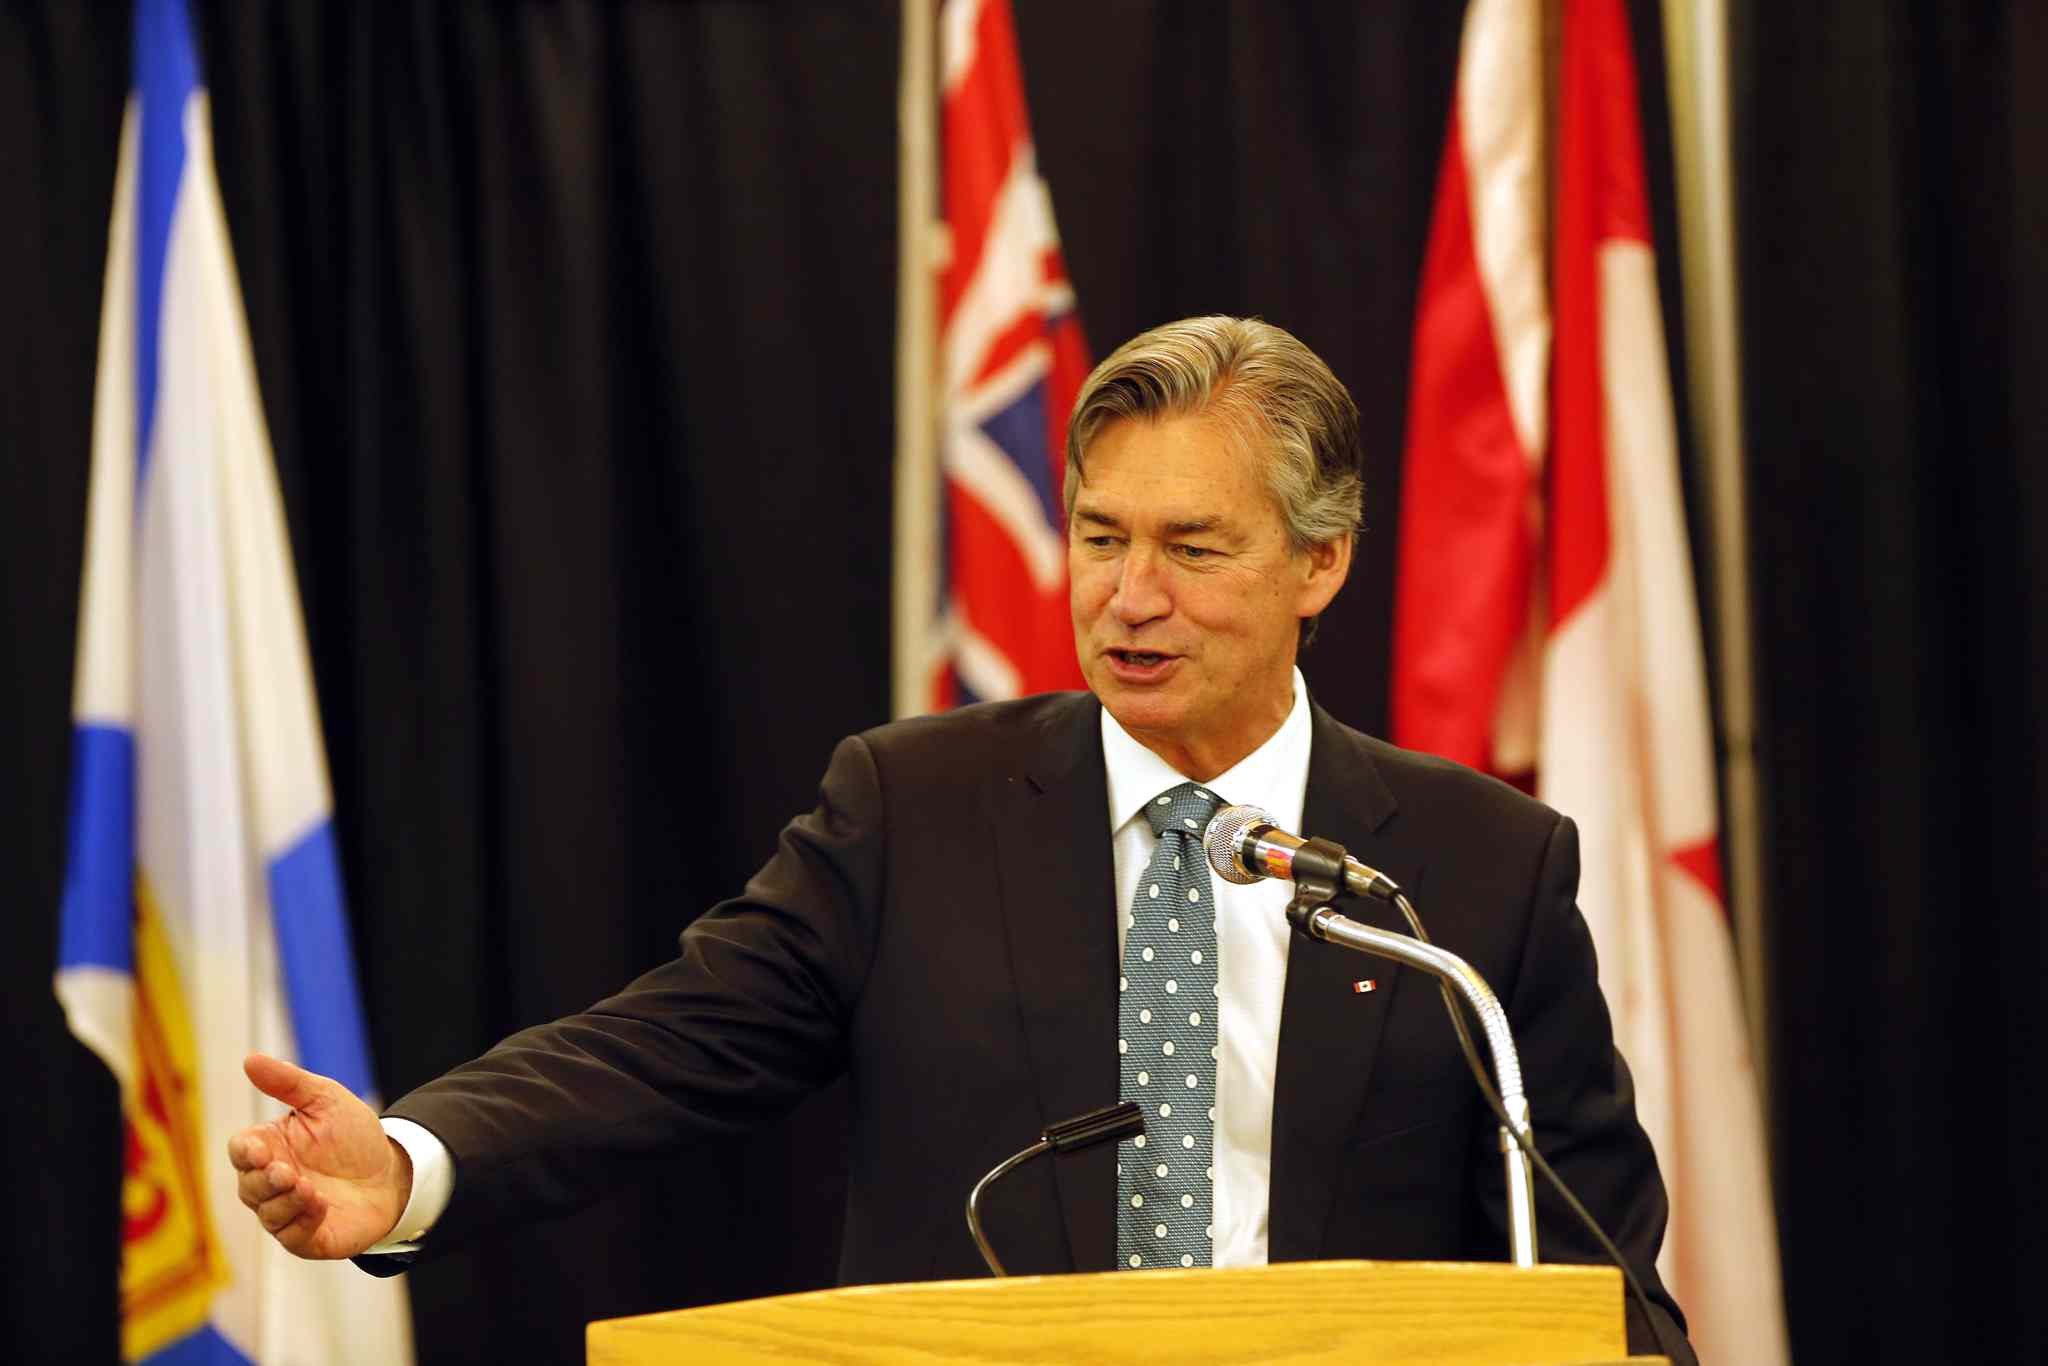 Ambassador Gary Doer, Team Canada's captain in the U.S. capital, has a reputation for hosting fun parties.